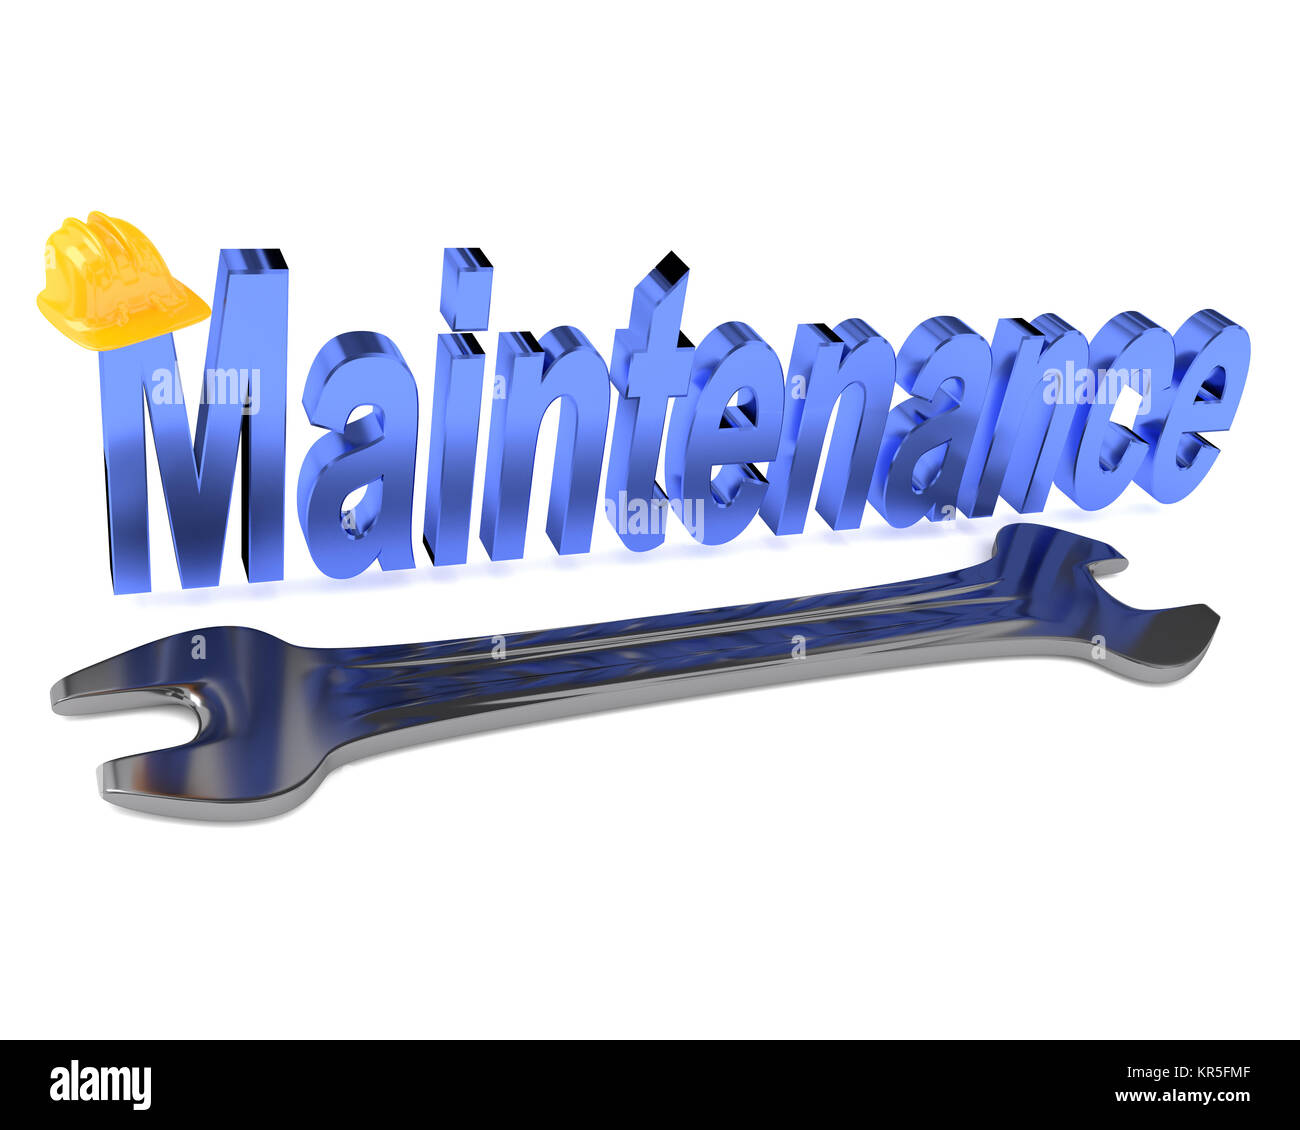 Wrench icon 3d stock photos wrench icon 3d stock images alamy maintenance concept image on white 3d rendering stock image buycottarizona